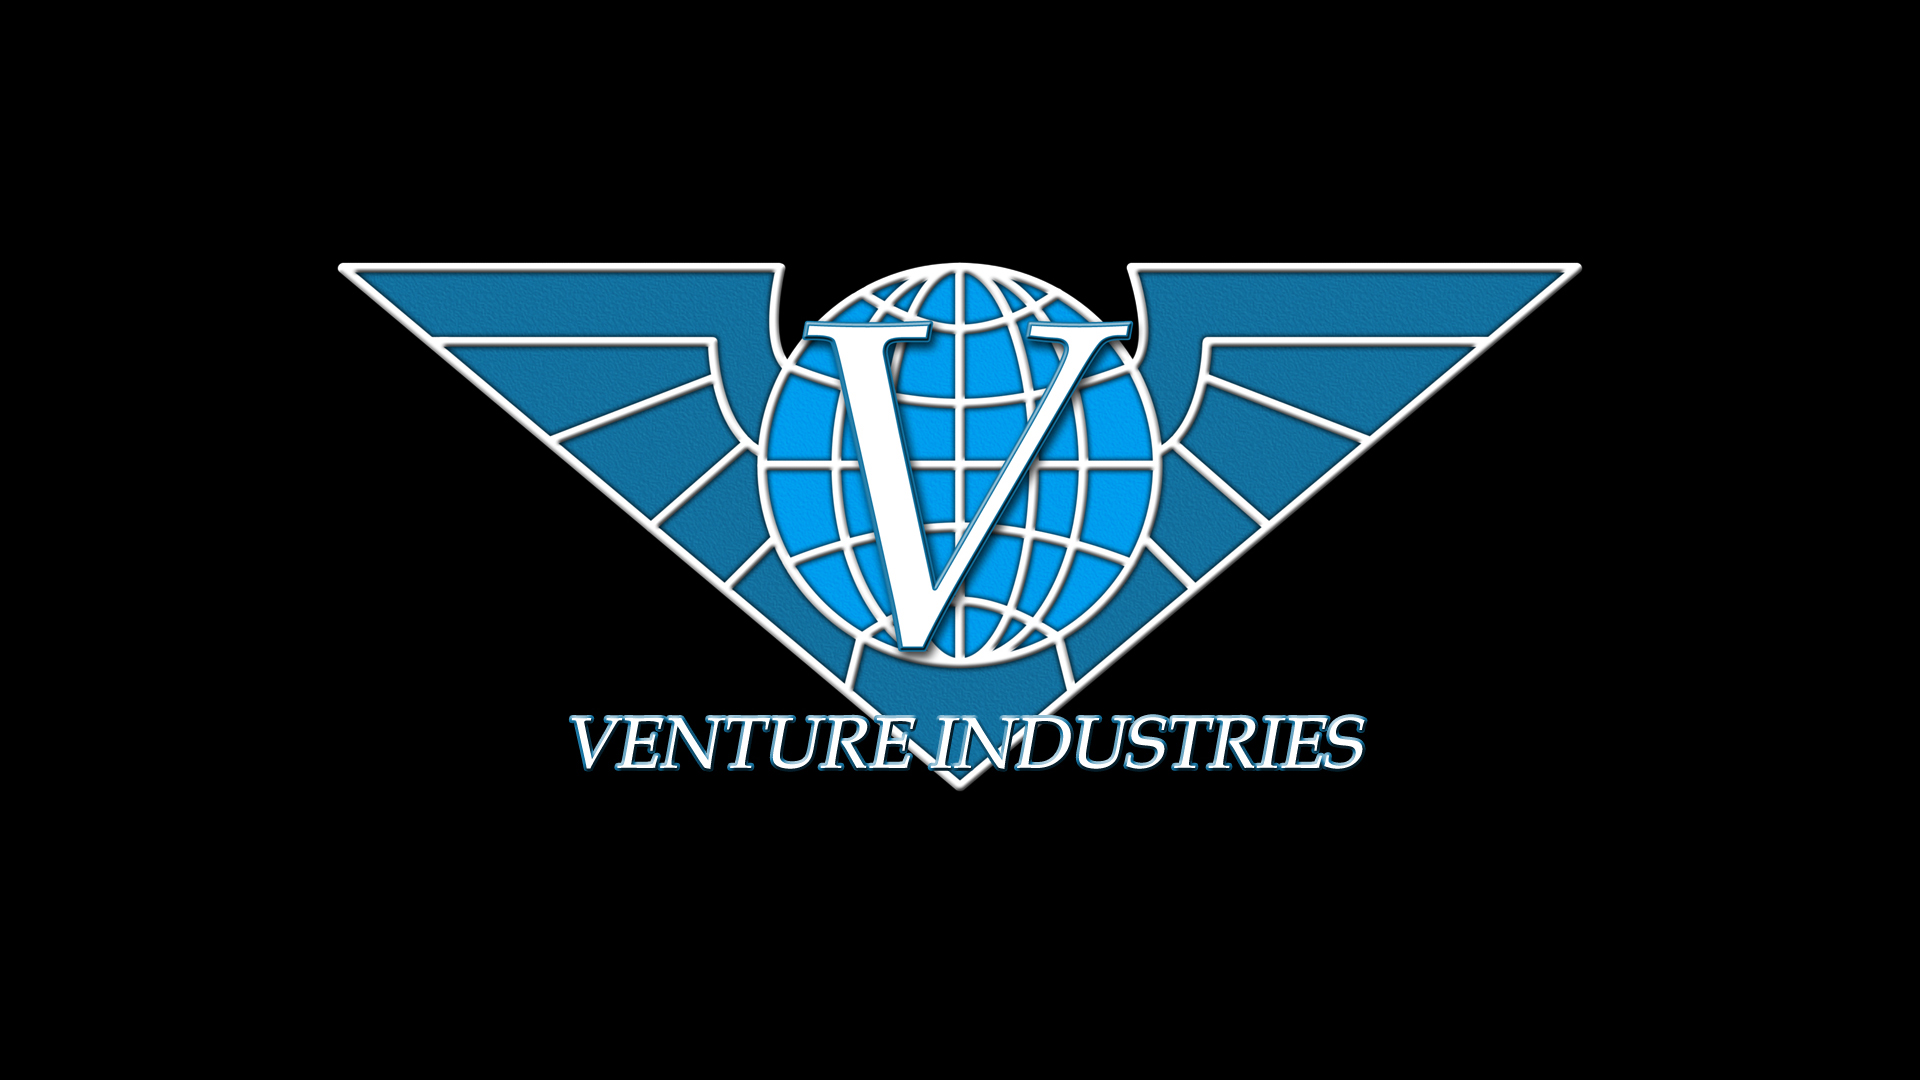 venture Venture is a premium domain leasing platform we offer a win-win solution for premium domain owners and new brands: perpetual domain leasing.